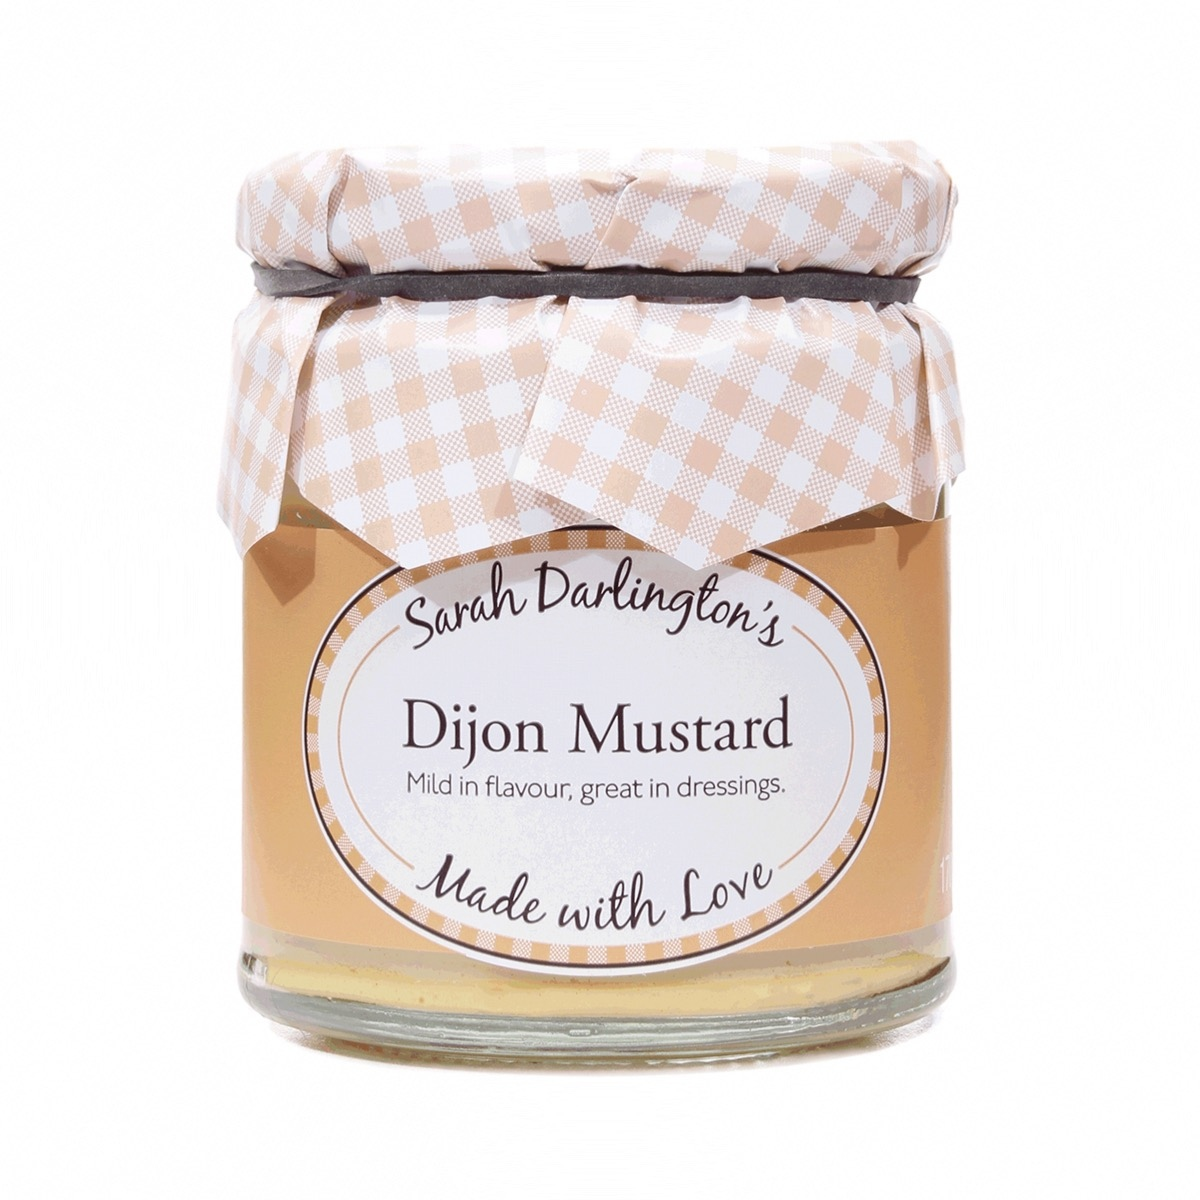 Mrs Darlingtons Dijon Mustard made with love! Mild in flavour, great in dressings!    https://t.co/kBXbdB153P https://t.co/6xfgzVIP9G